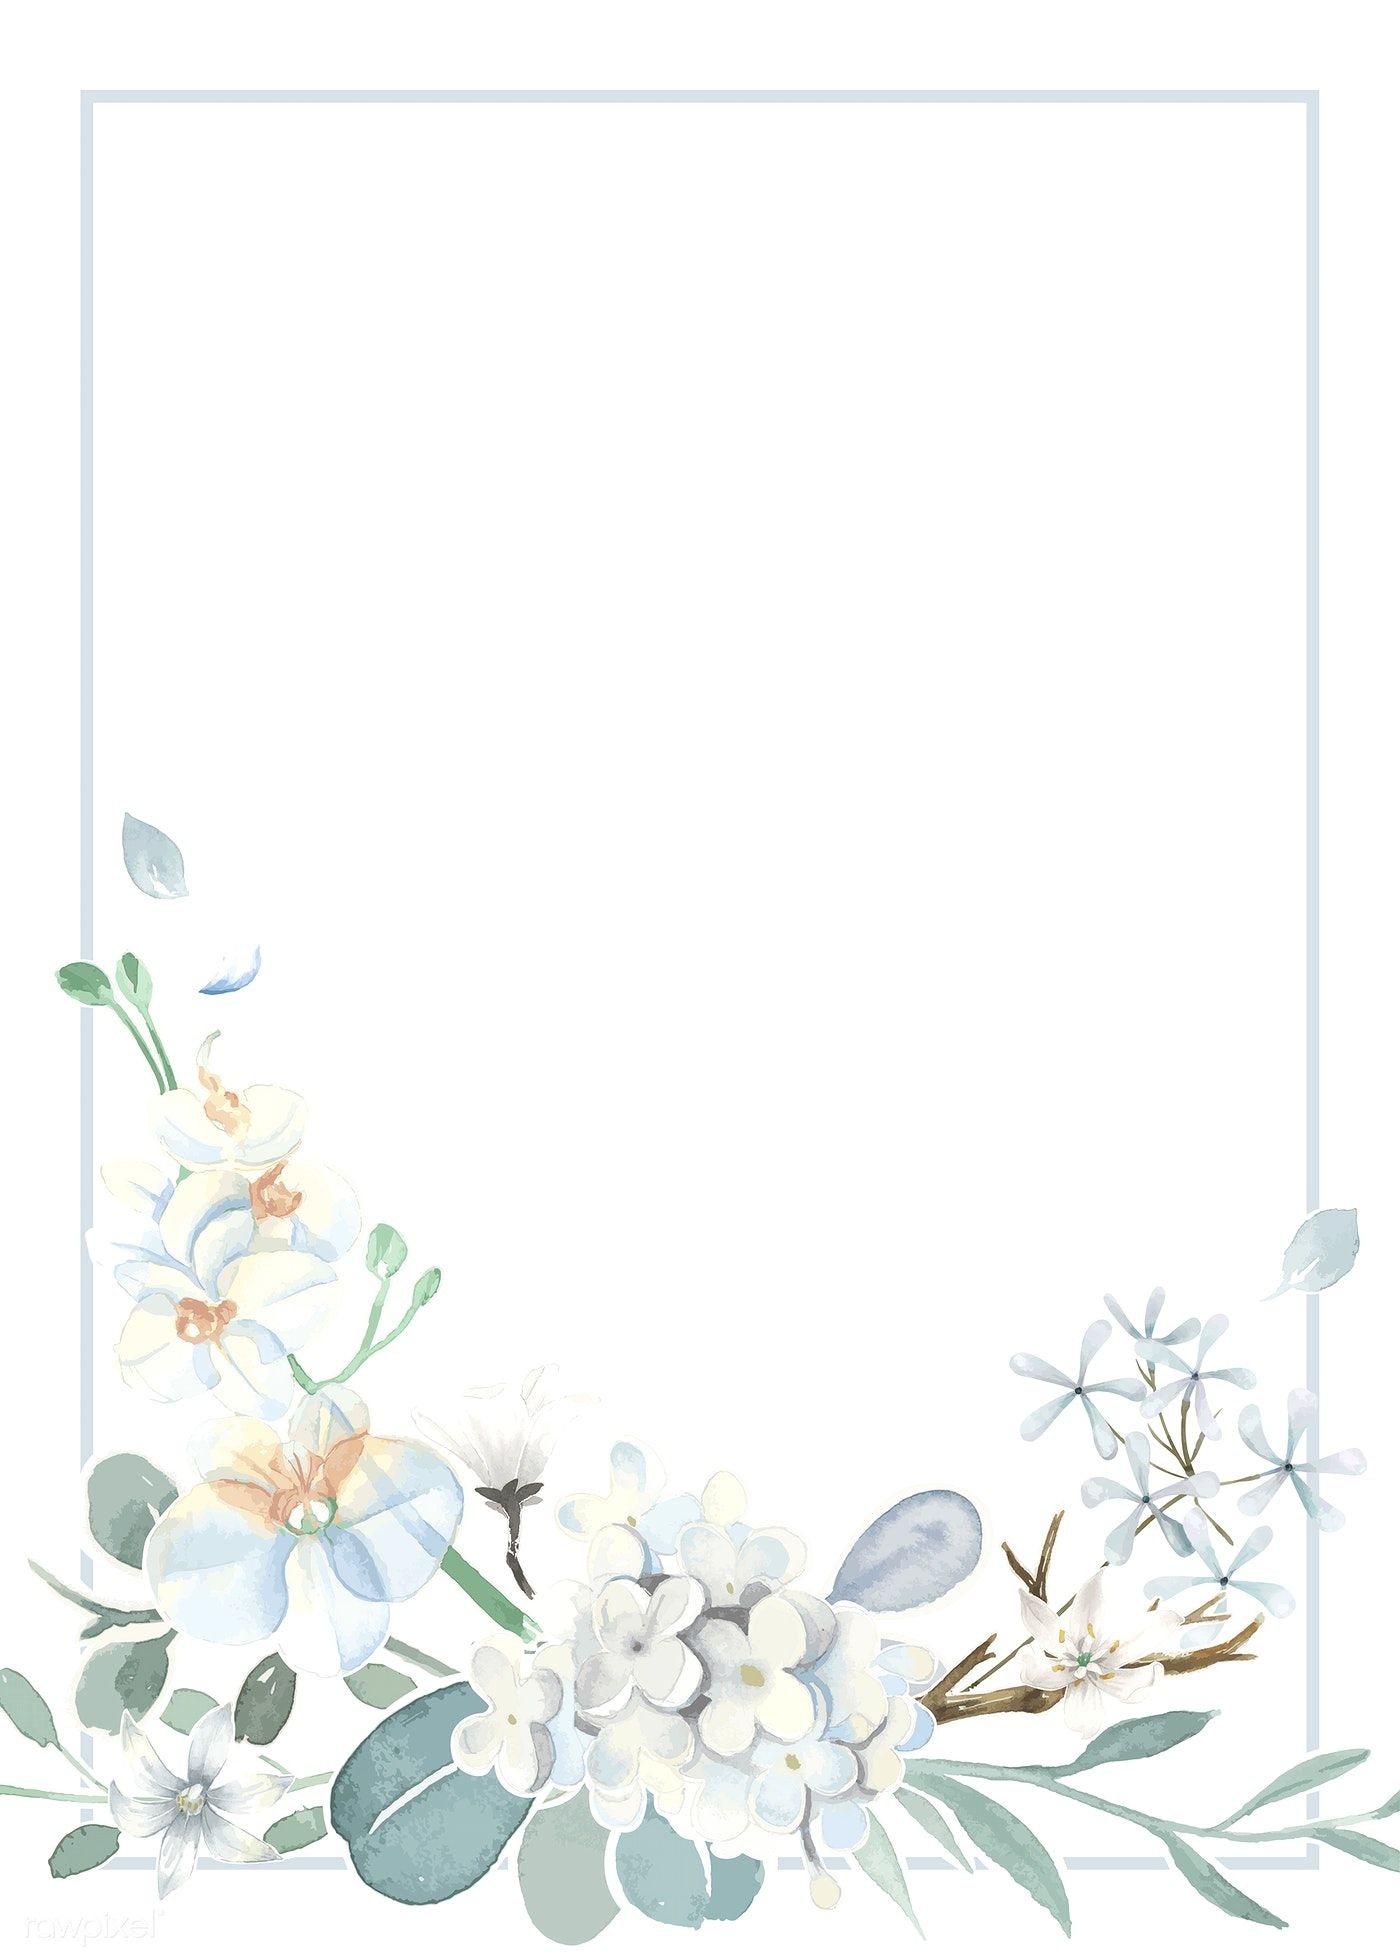 Download Premium Illustration Of Invitation Card With A Light Blue